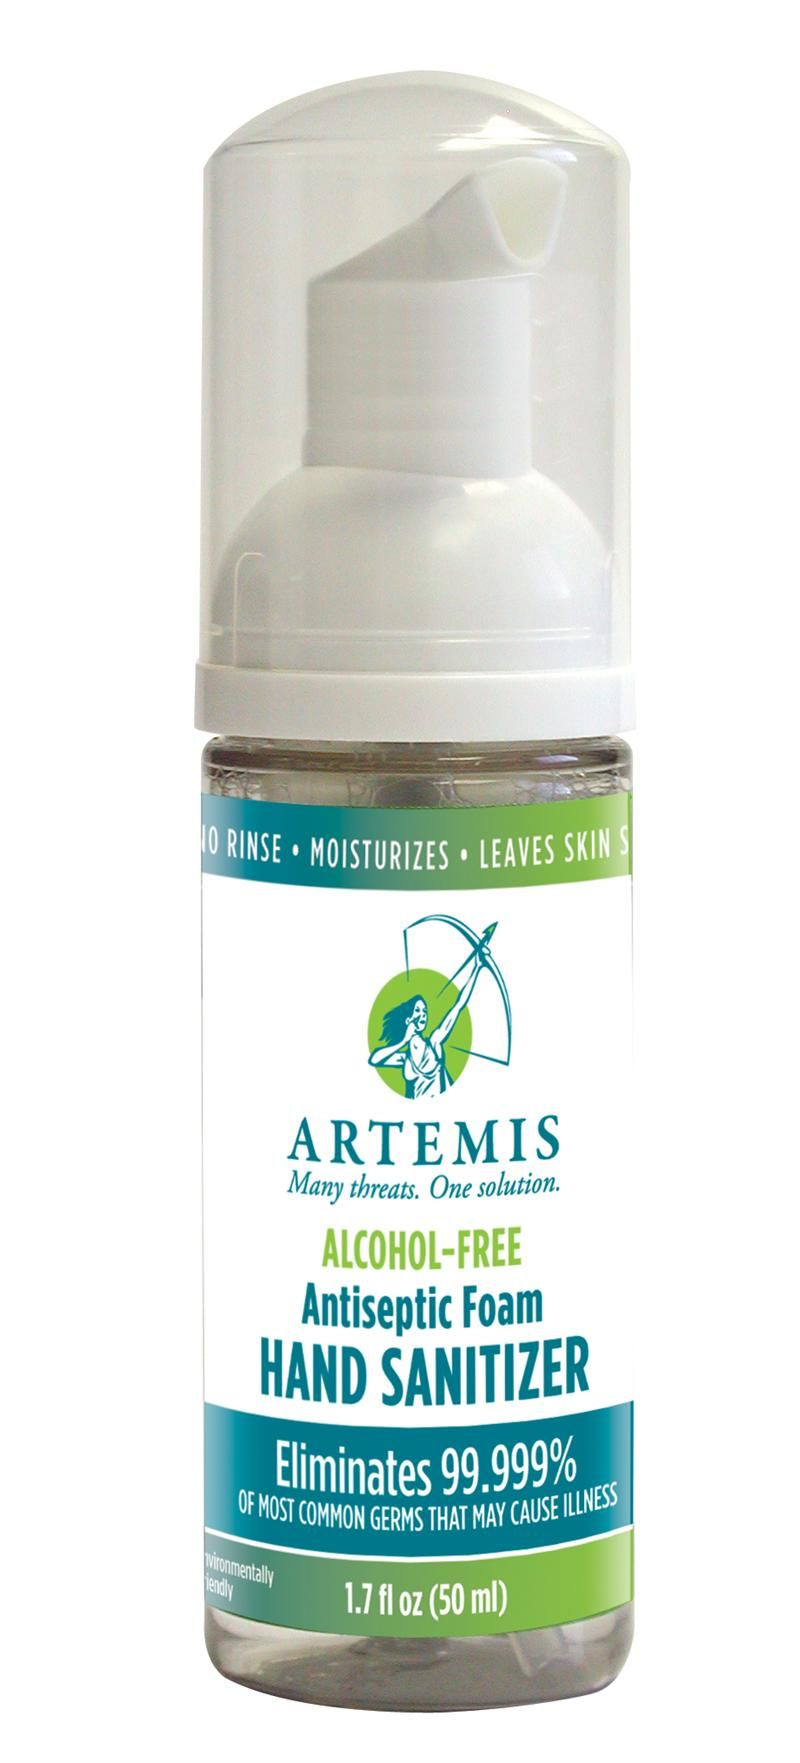 Artemis Alcohol Free Foaming Antiseptic Hand Sanitizer Its Unique